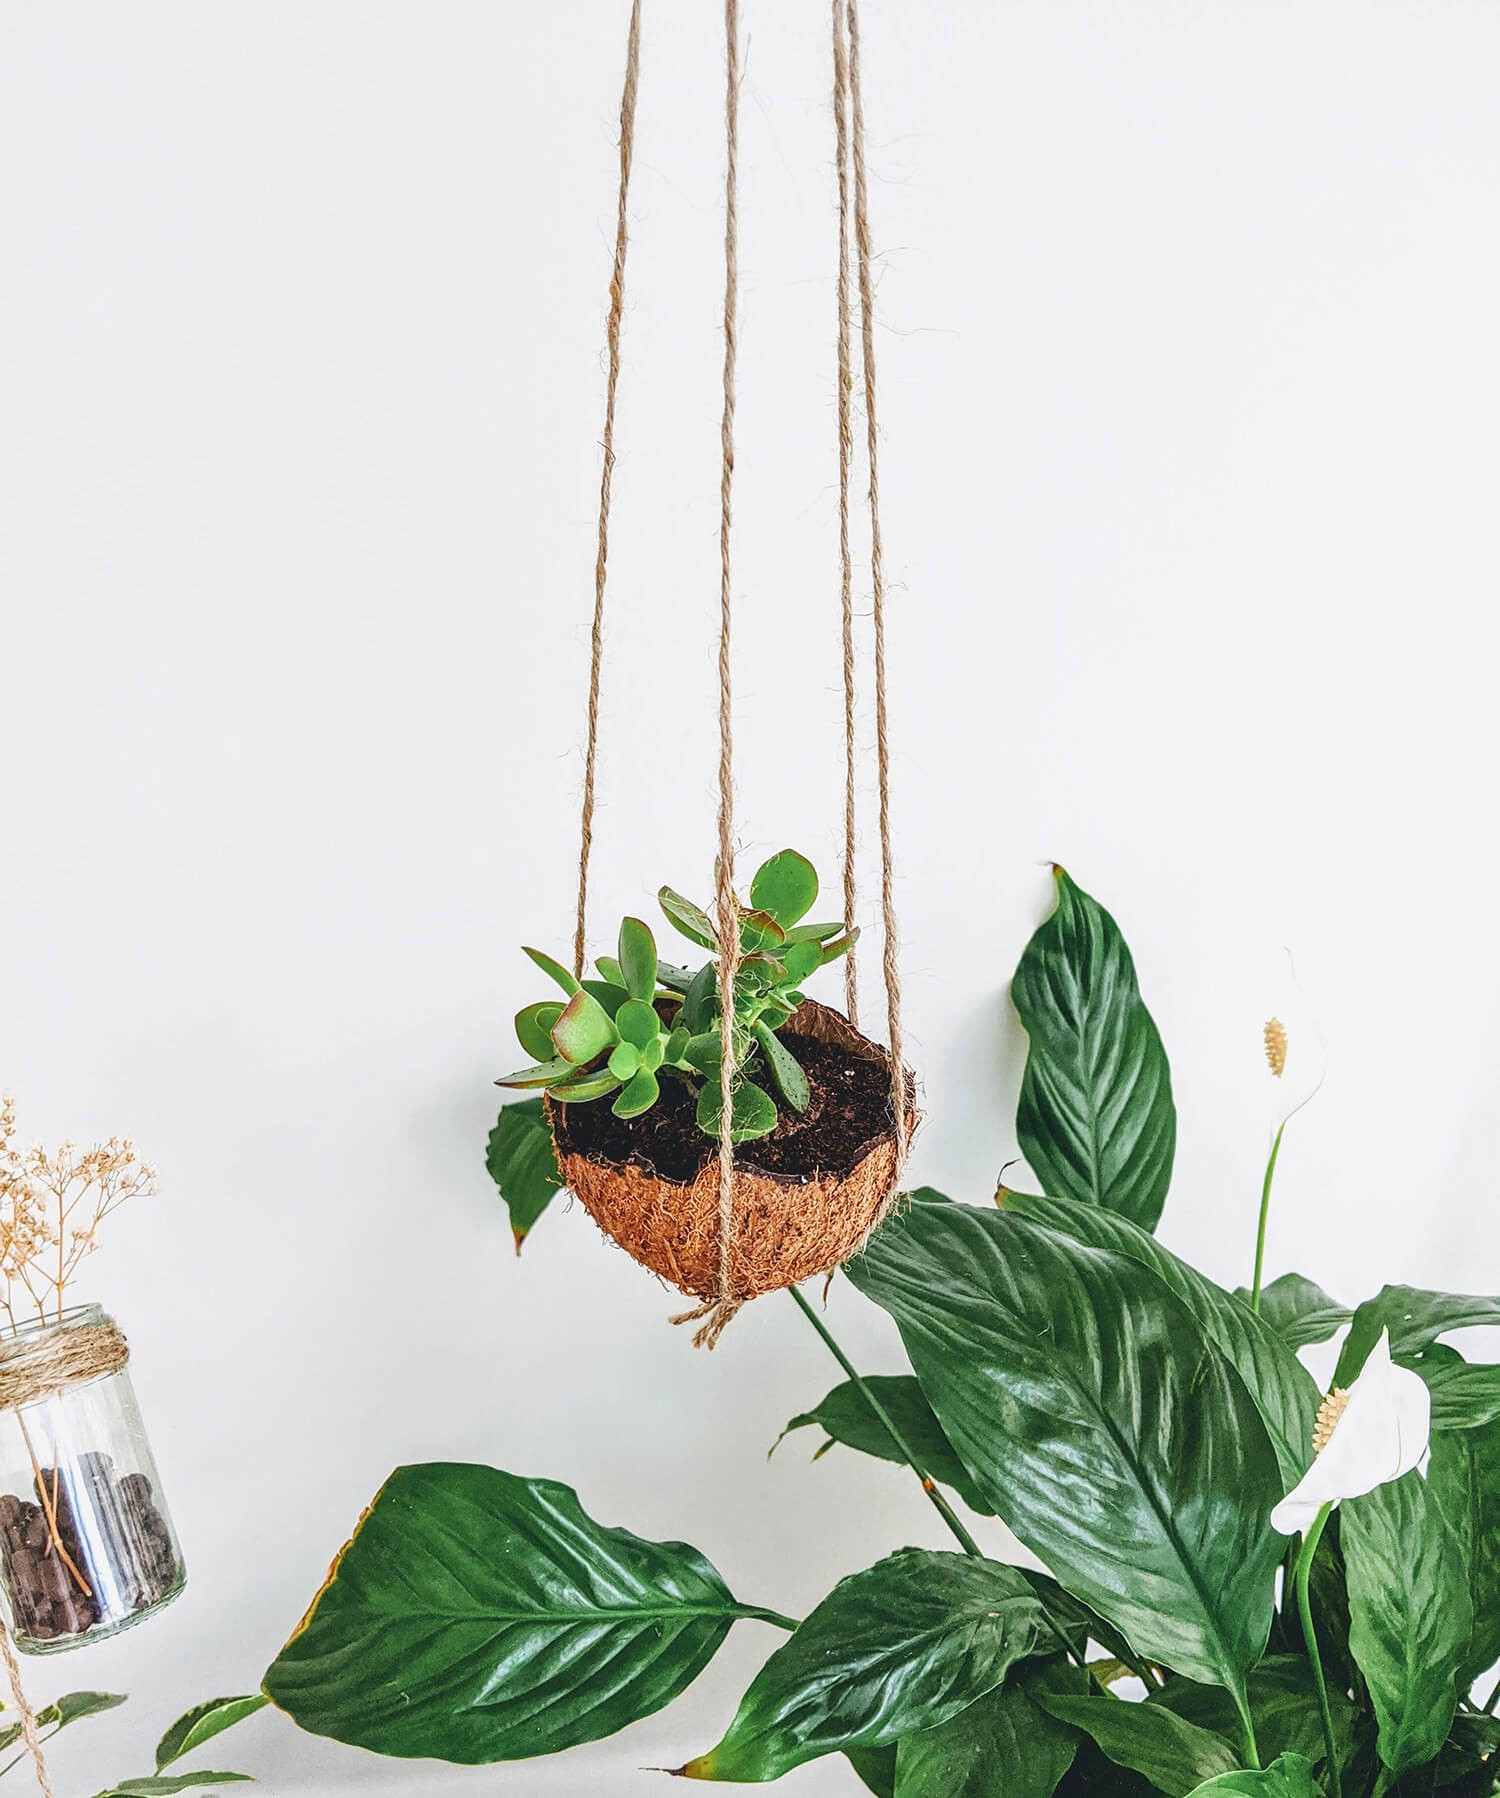 hanging coconut planer hanging above peace lily plant